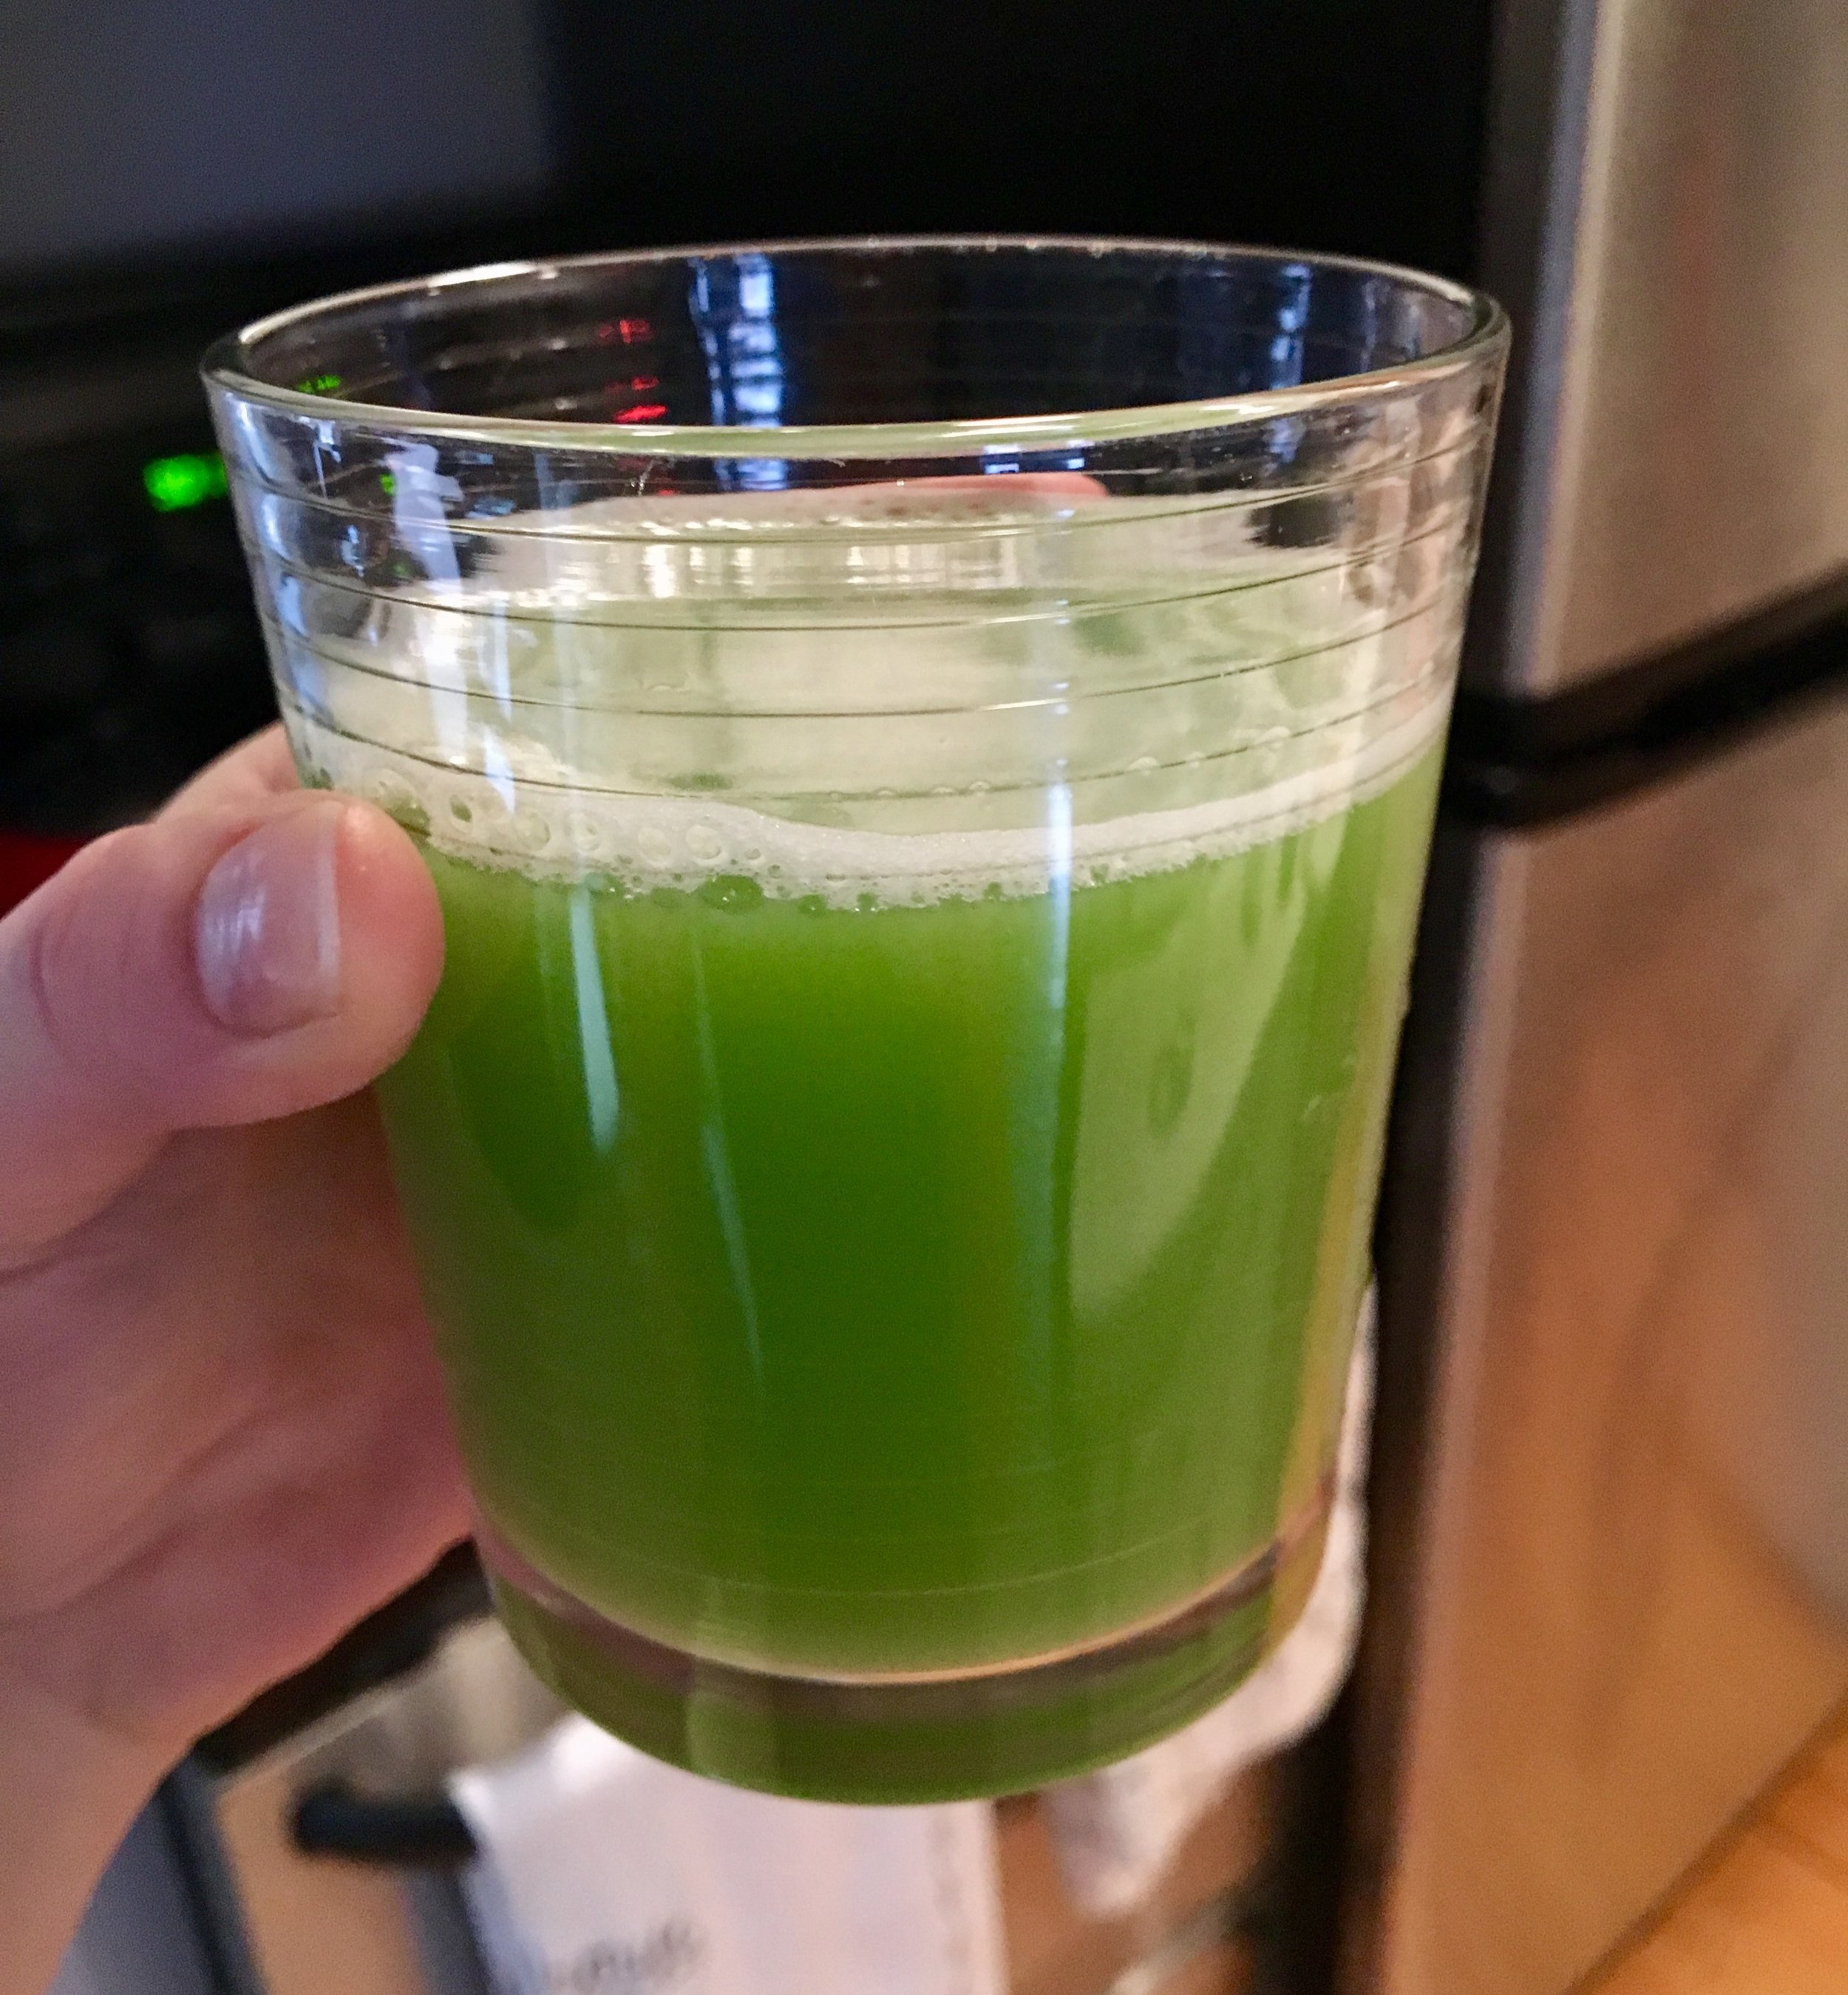 My attempt at celery juice.